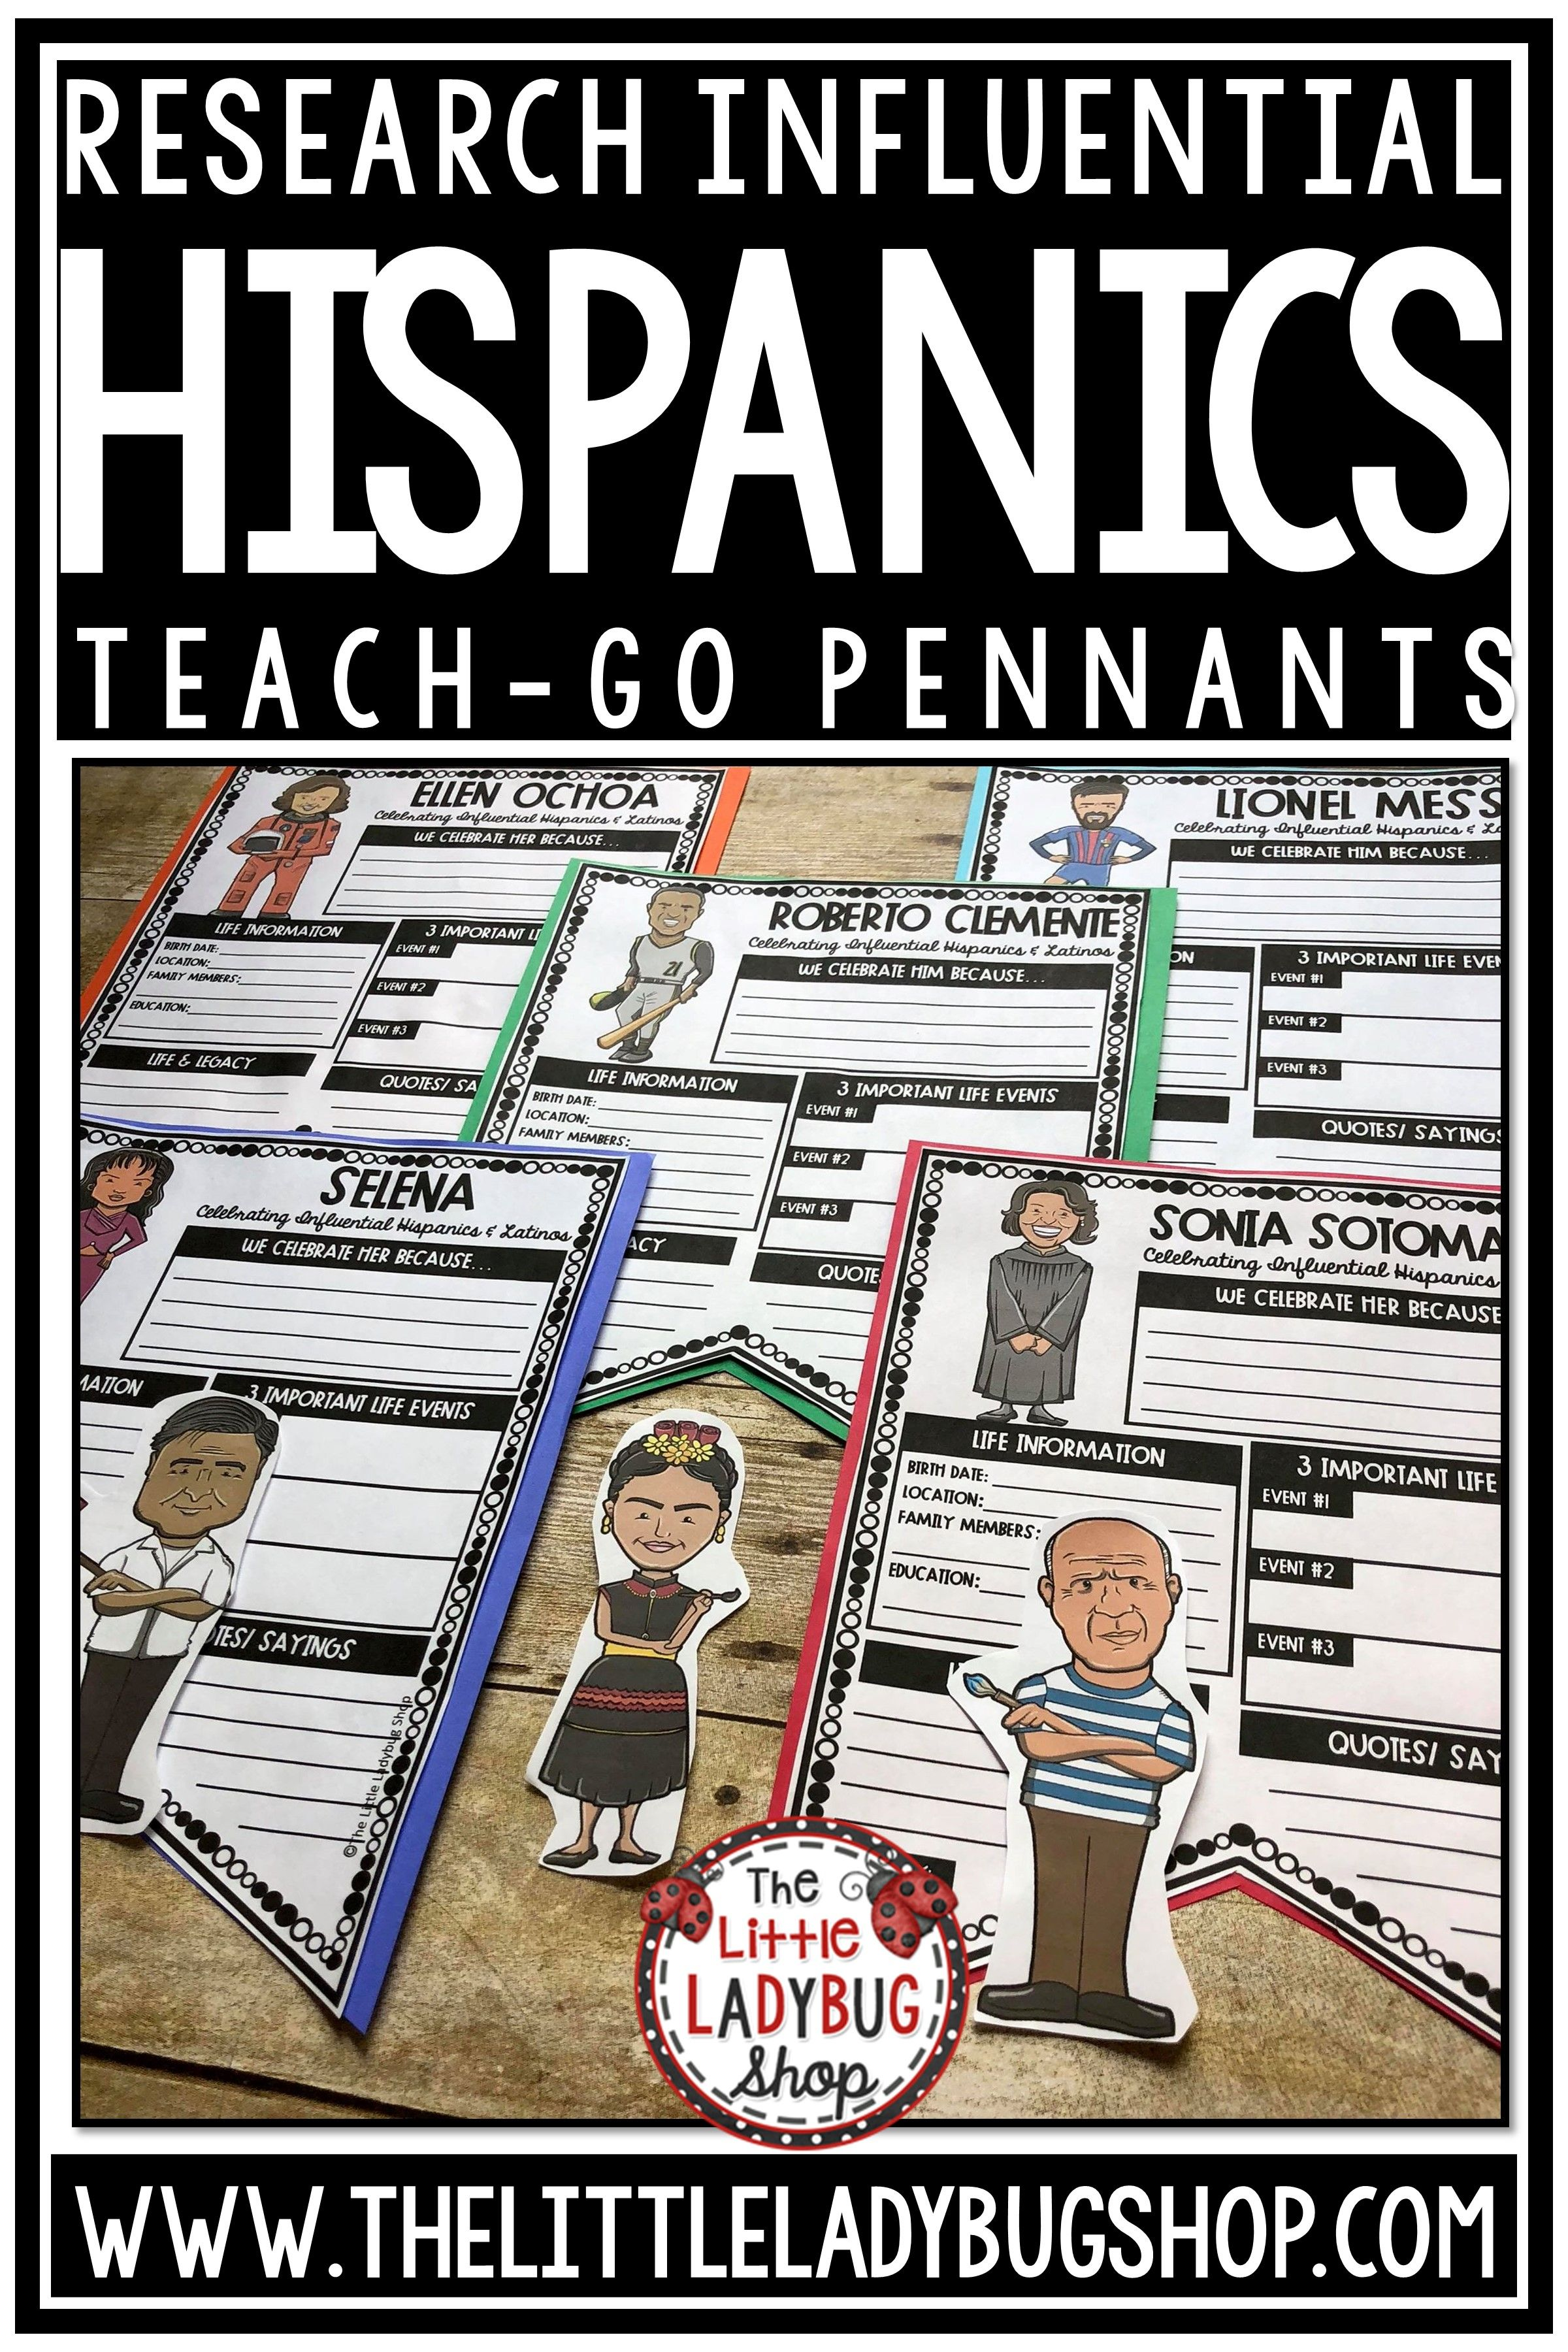 Celebrate Hispanic Heritage Month with some wonderful research ...